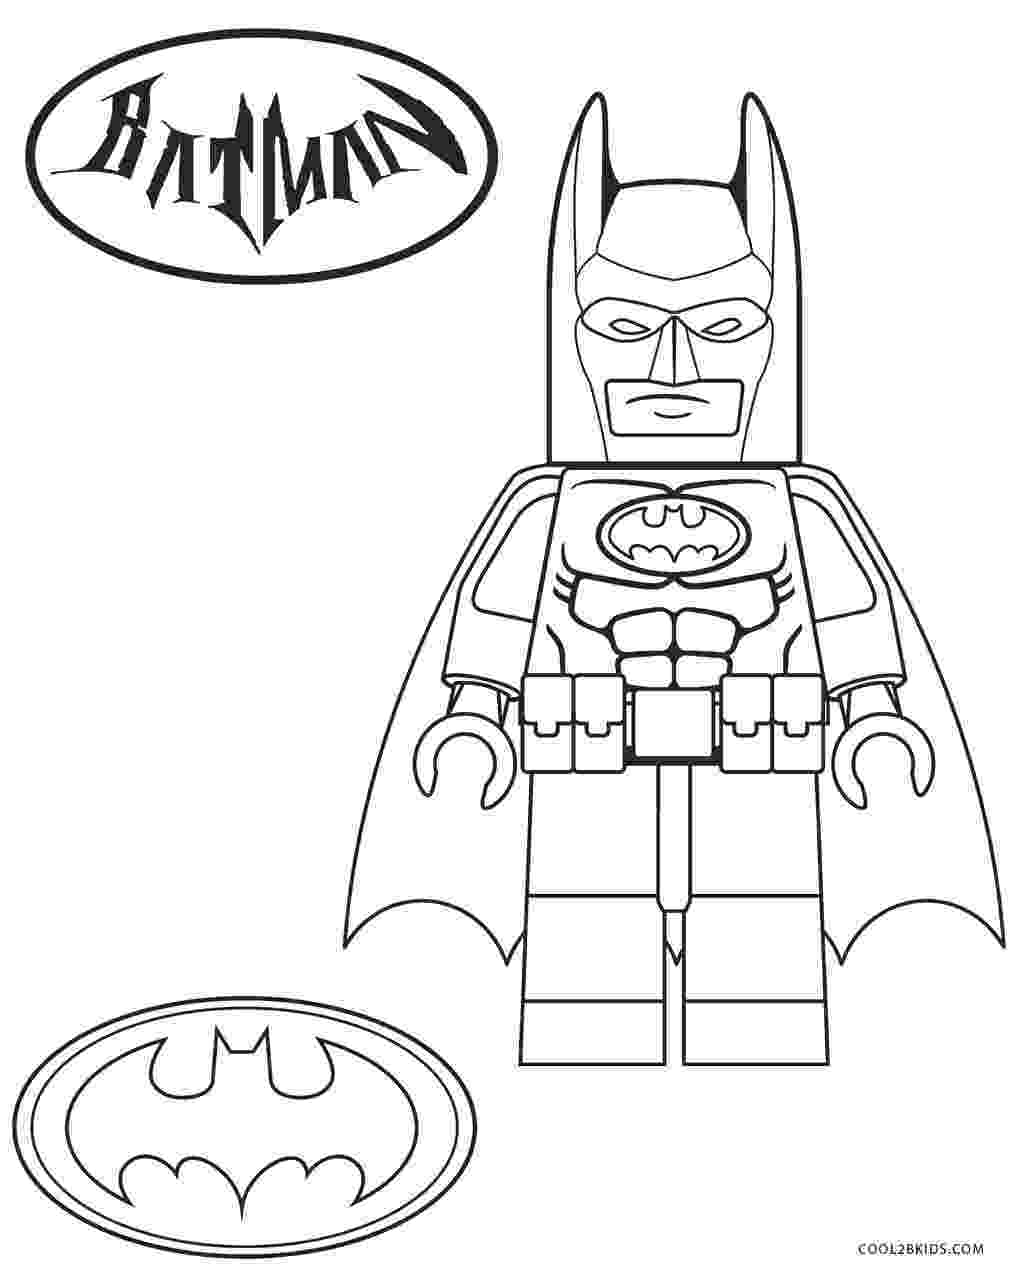 lego printable colouring pages lego coloring pages best coloring pages for kids colouring lego printable pages